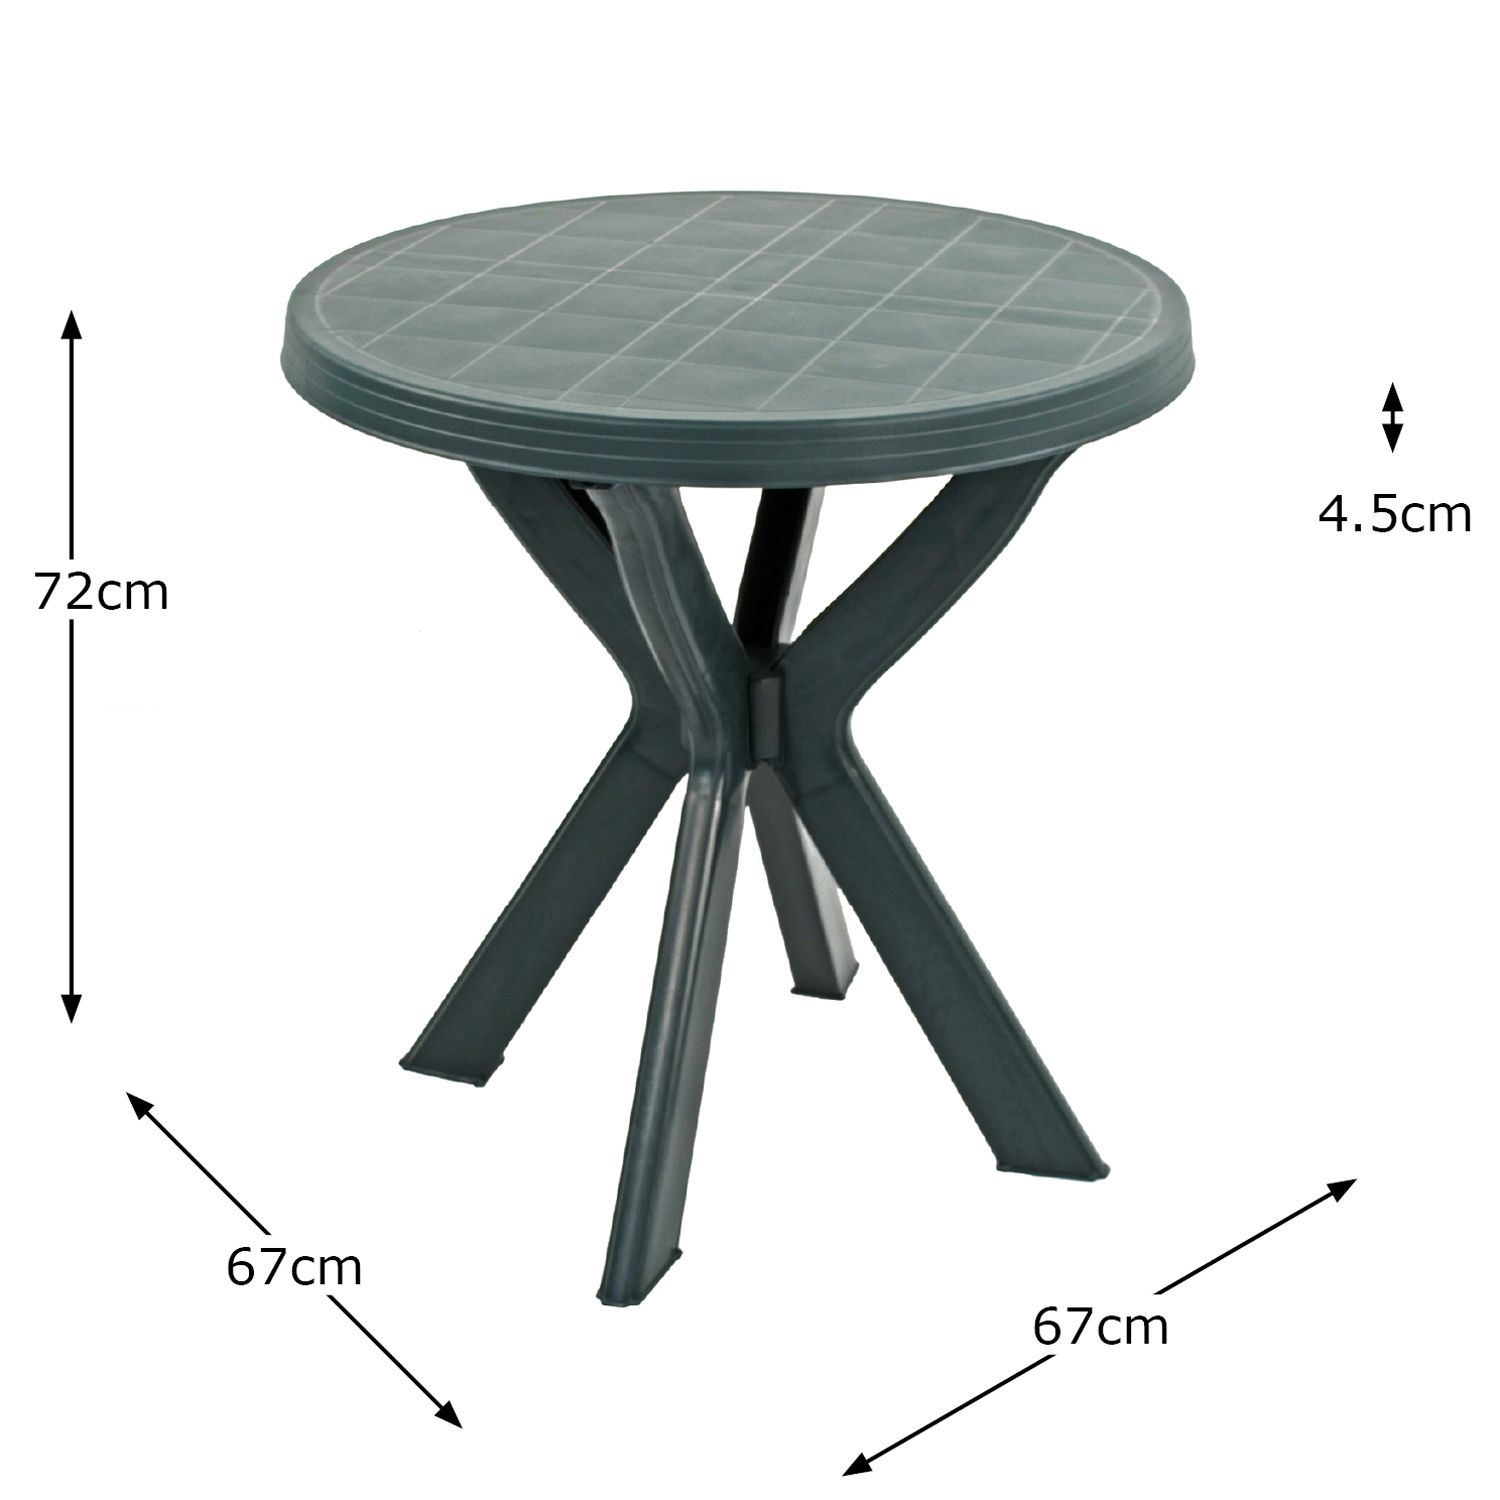 TIVOLI BISTRO TABLE GREEN DIMENSION MS1